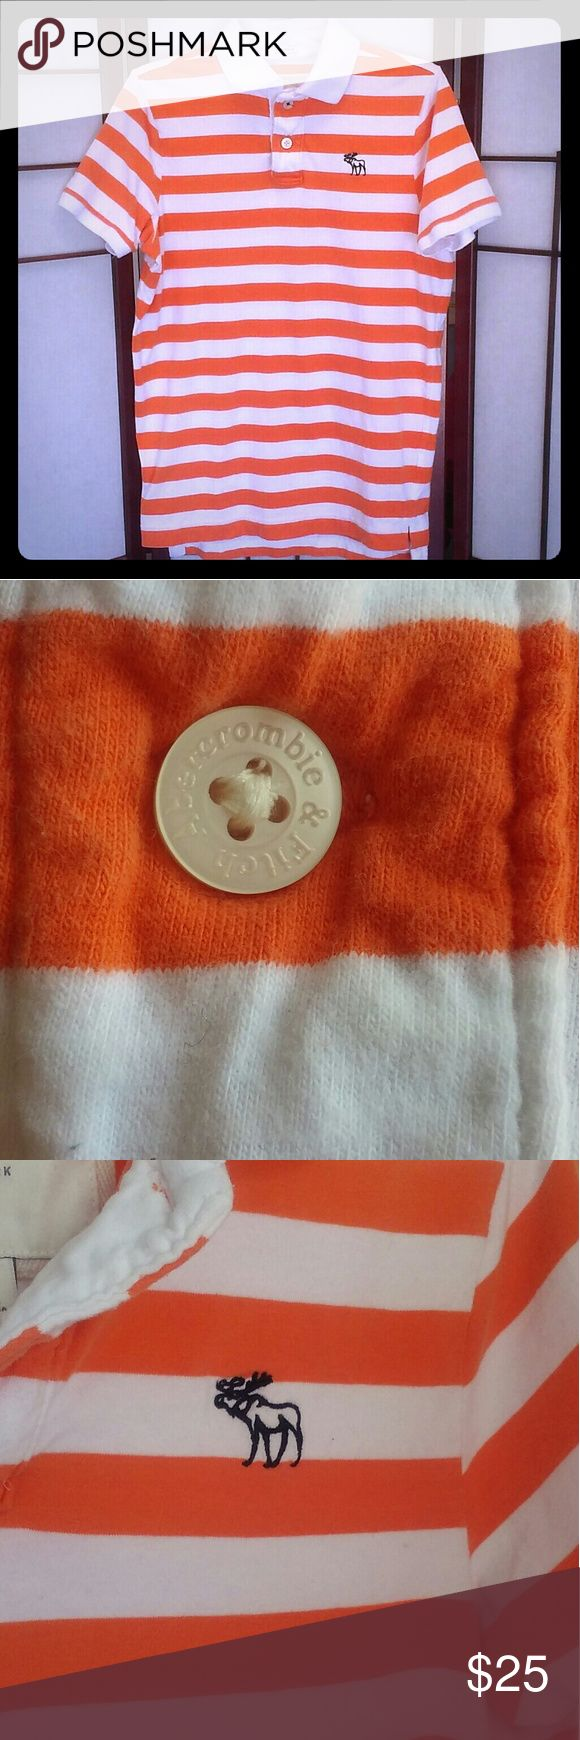 LIKE NEW MUSCLE  Striped Polo Shirt Men's  Abercrombie and Fitch MUSCLE  SHIRT Orange/White Striped Polo Shirt with White collar. Gently uses. Great condition. Abercrombie & Fitch Shirts Polos